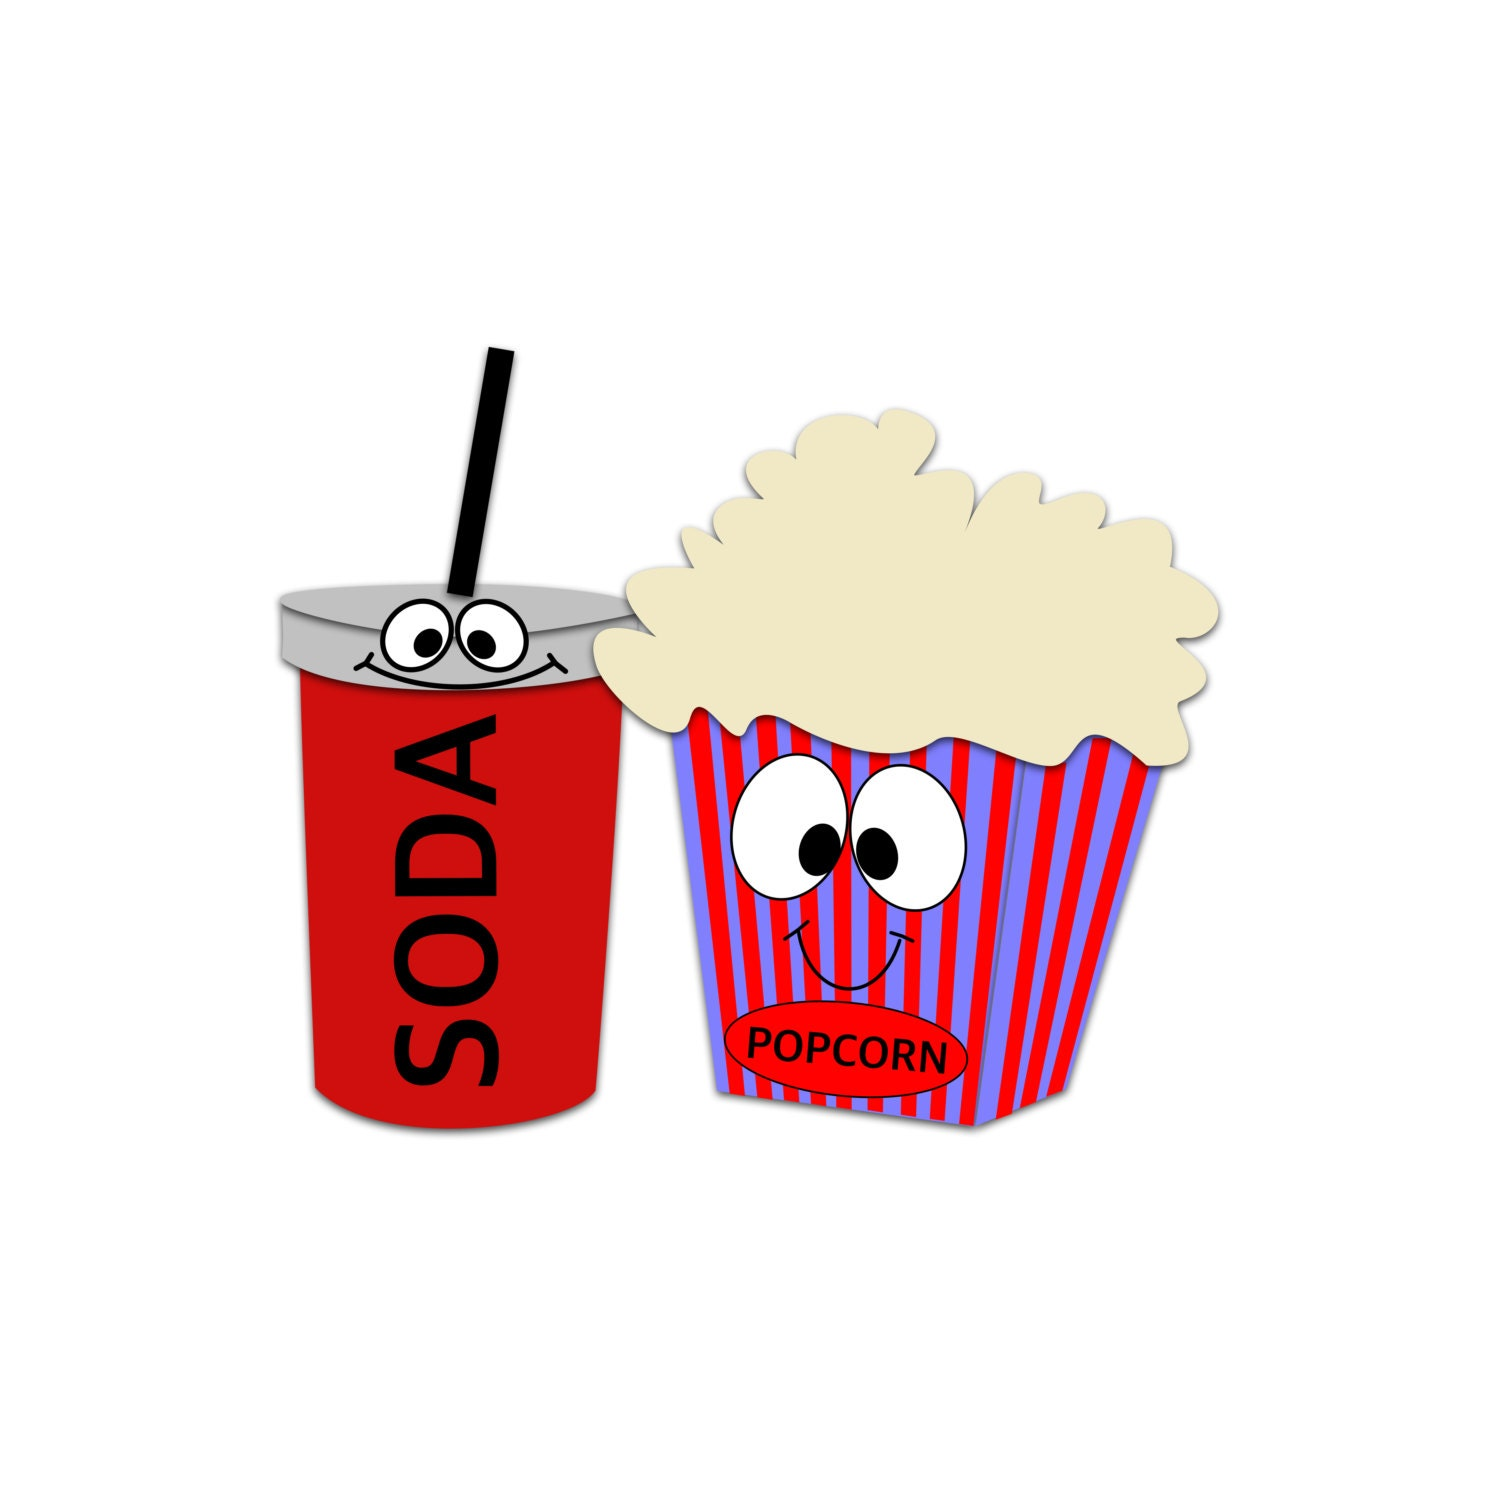 popcorn character clipart soda clipart movie snacks rh etsy com movie theatre clip art free movie theater clipart images